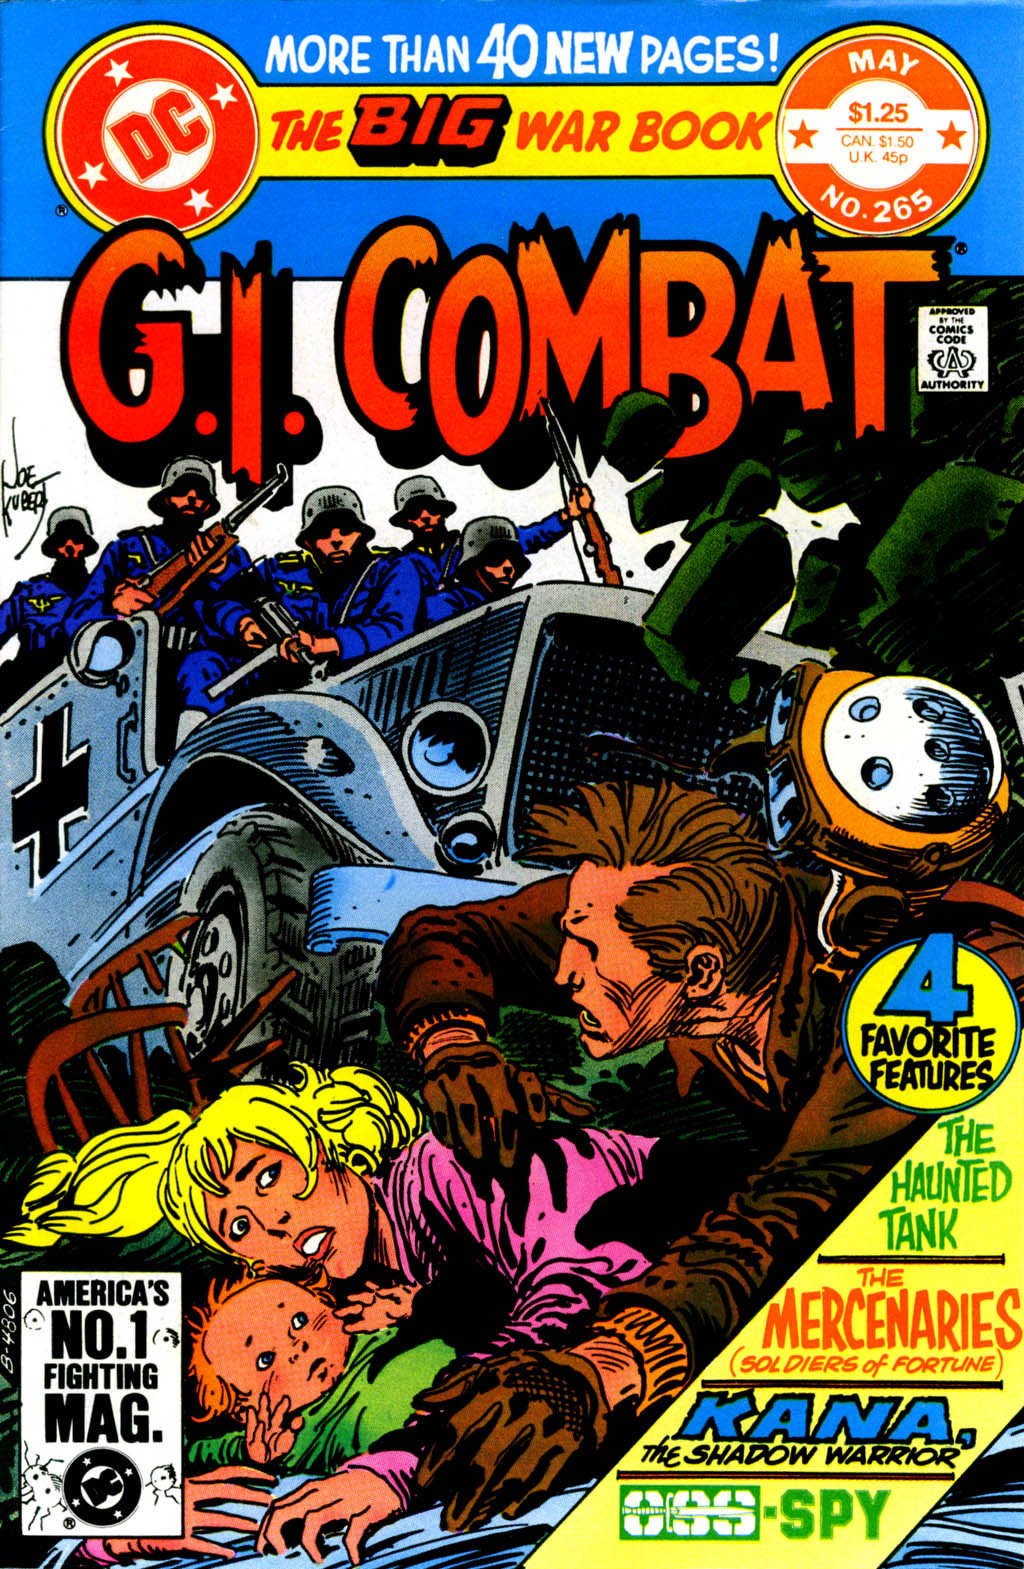 G.I. Combat (1952) issue 265 - Page 1